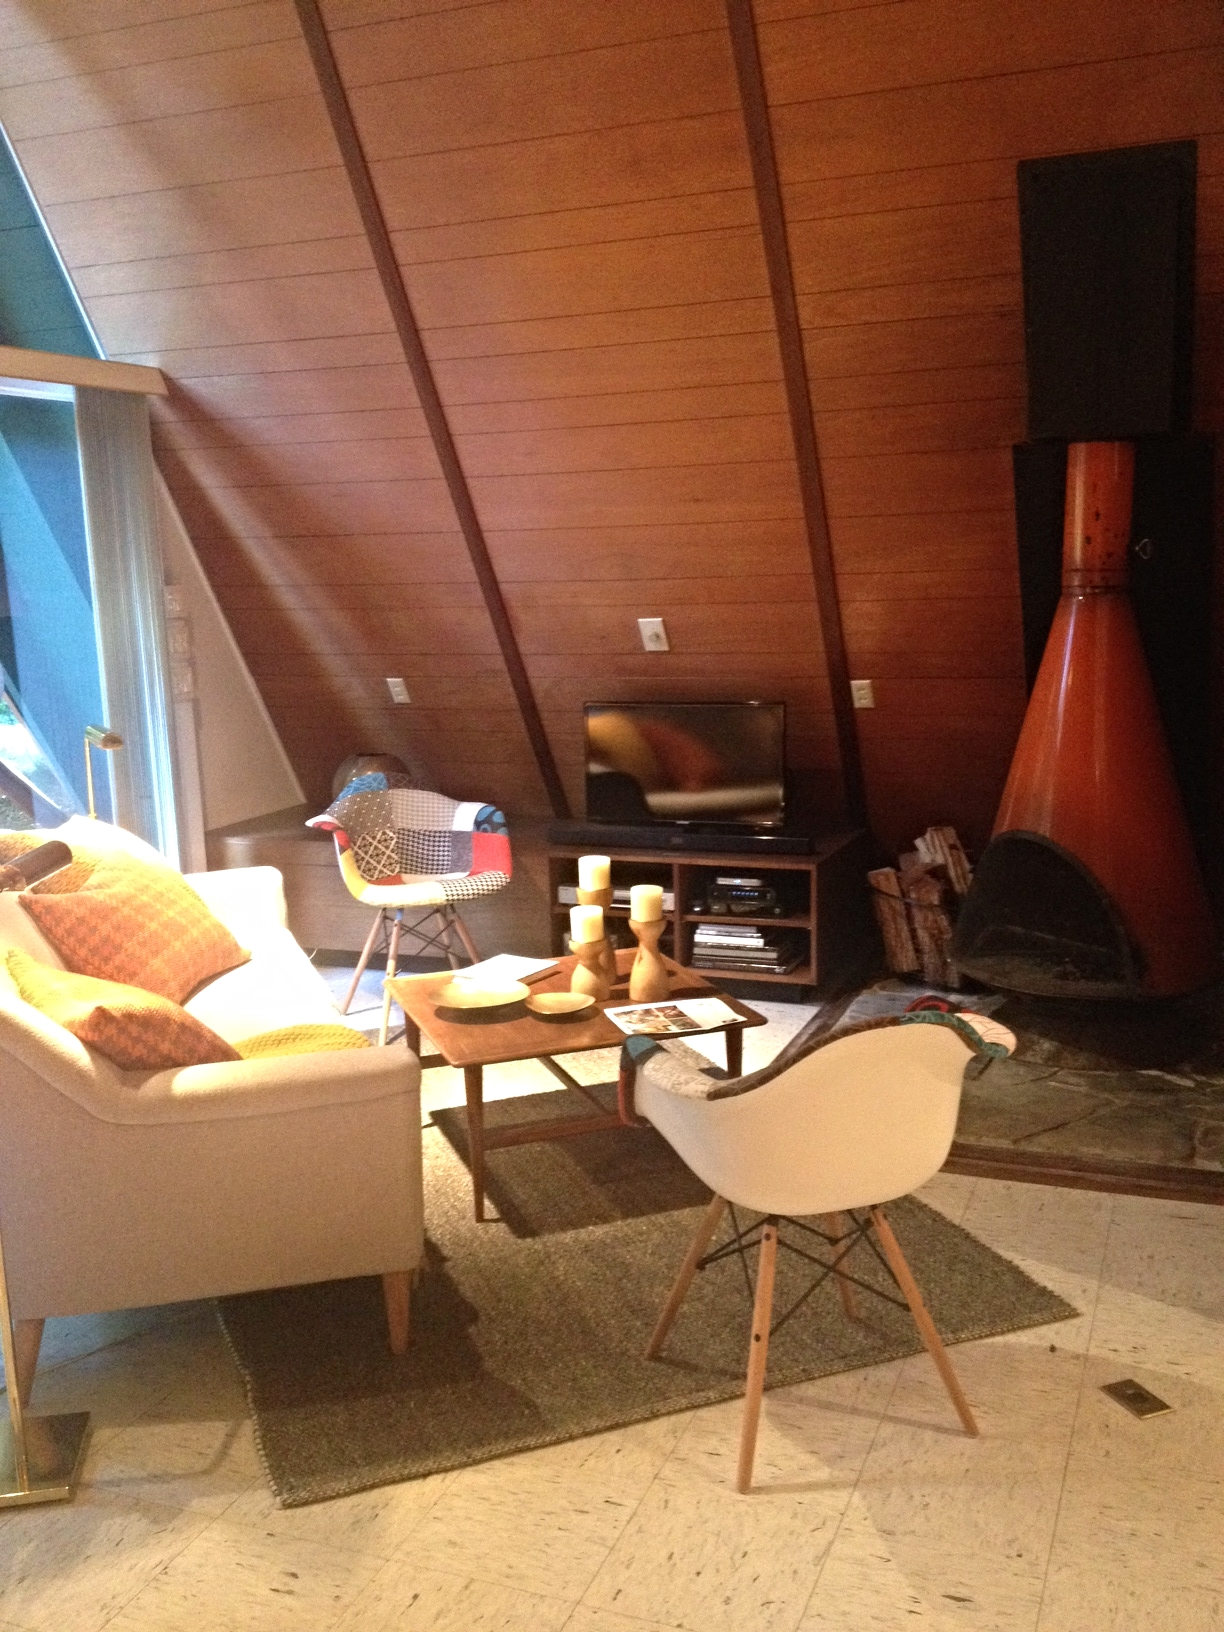 The mid-century modern living room